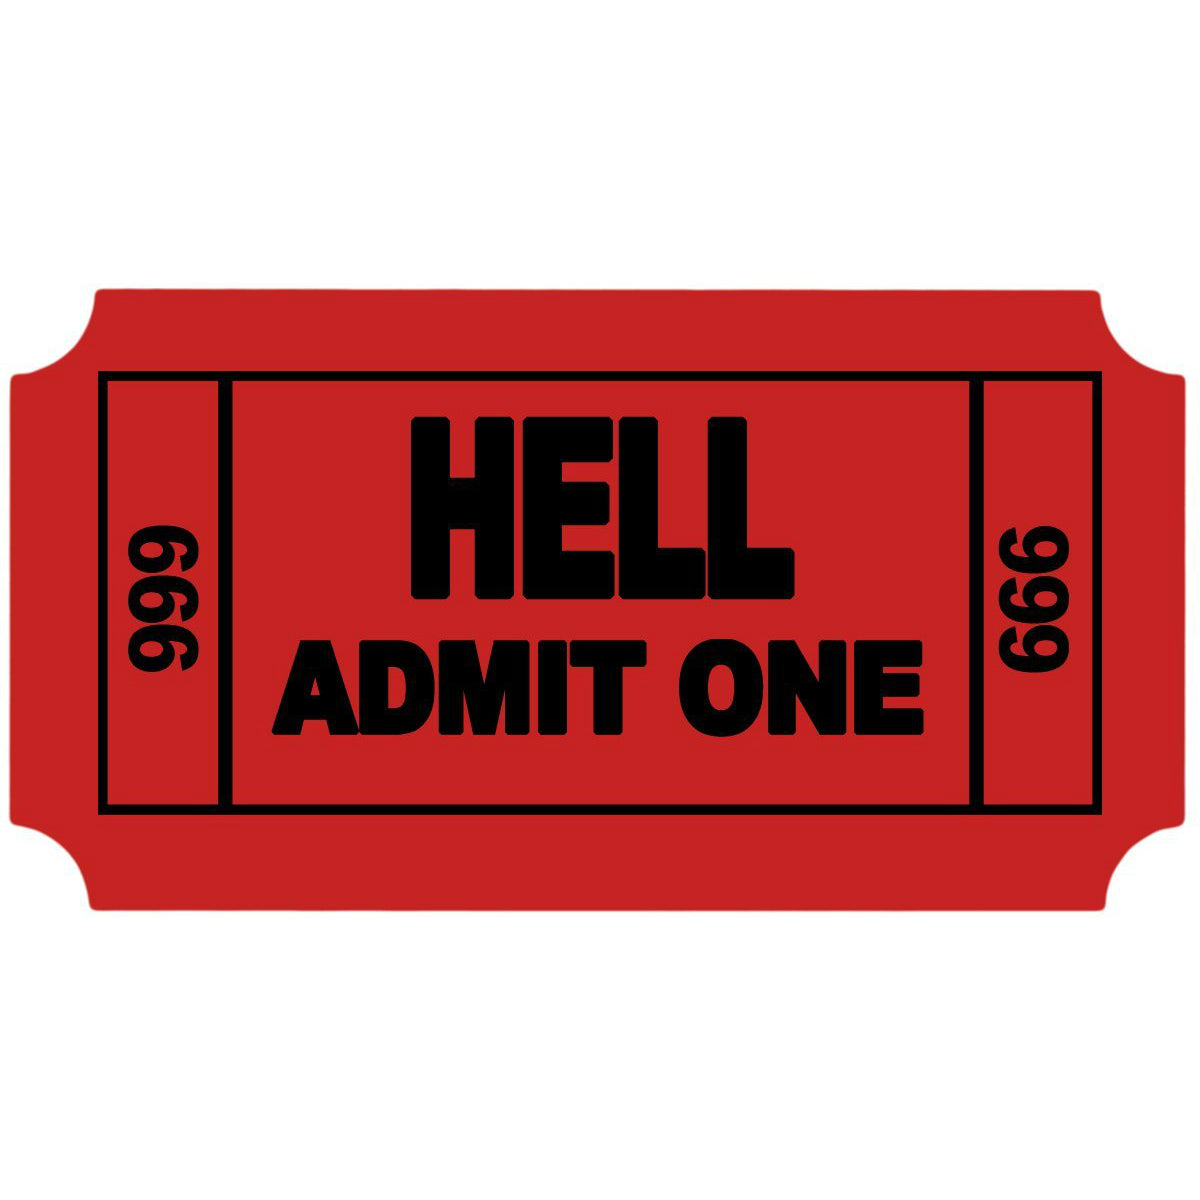 Ticket to Hell - OddGifts.com